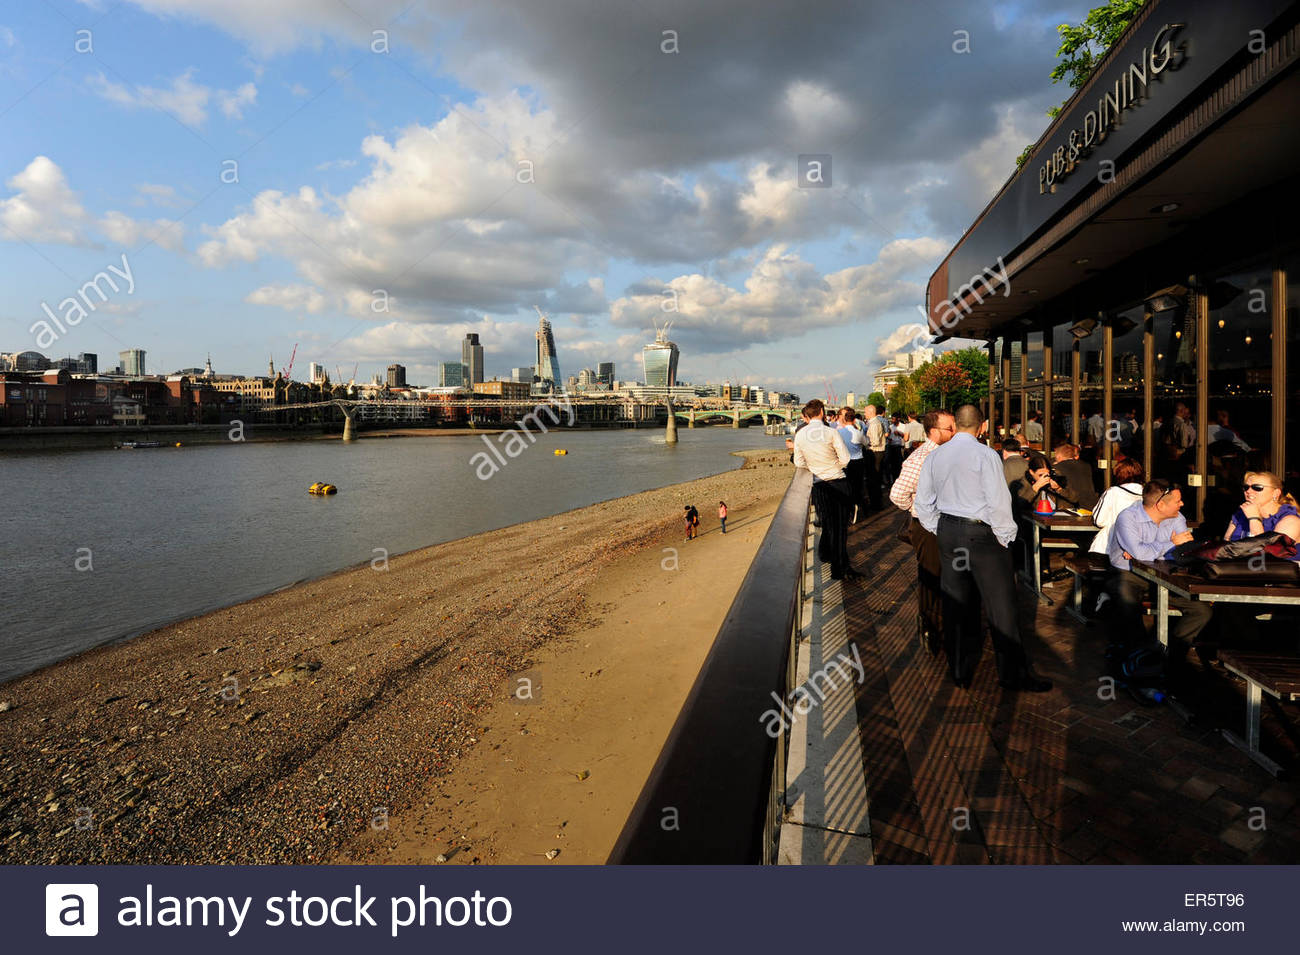 After work drink, pub along the Thames River, South Bank, London, England, Great Britain, United Kingdom - Stock Image